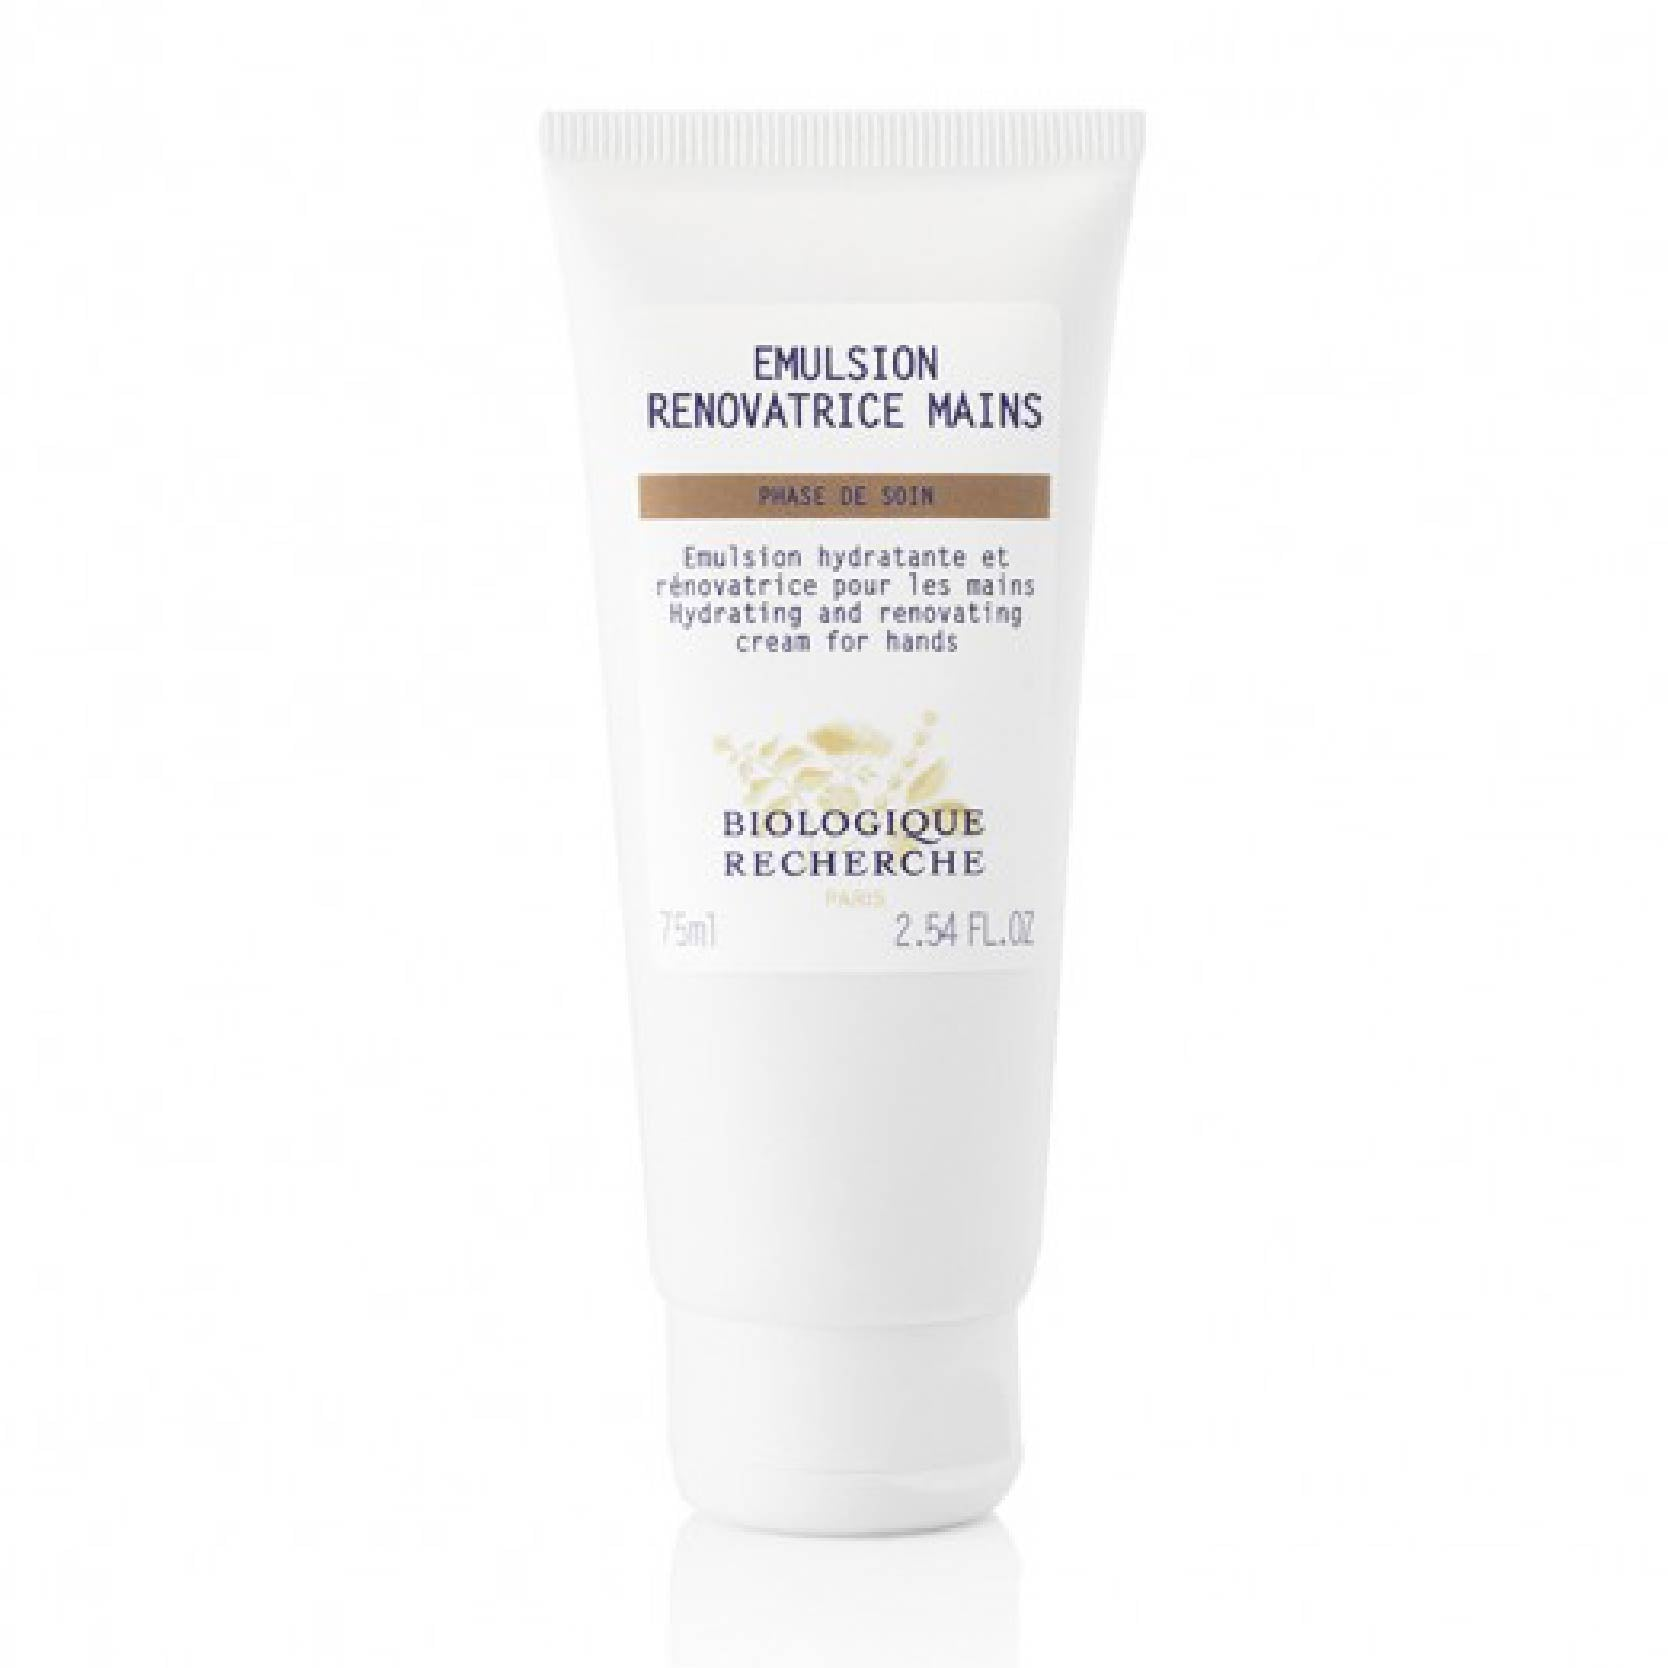 Biologique Recherche - Emulsion Renovatrice Mains   <br>  (FOR DRY, DEHYDRATED HANDS)